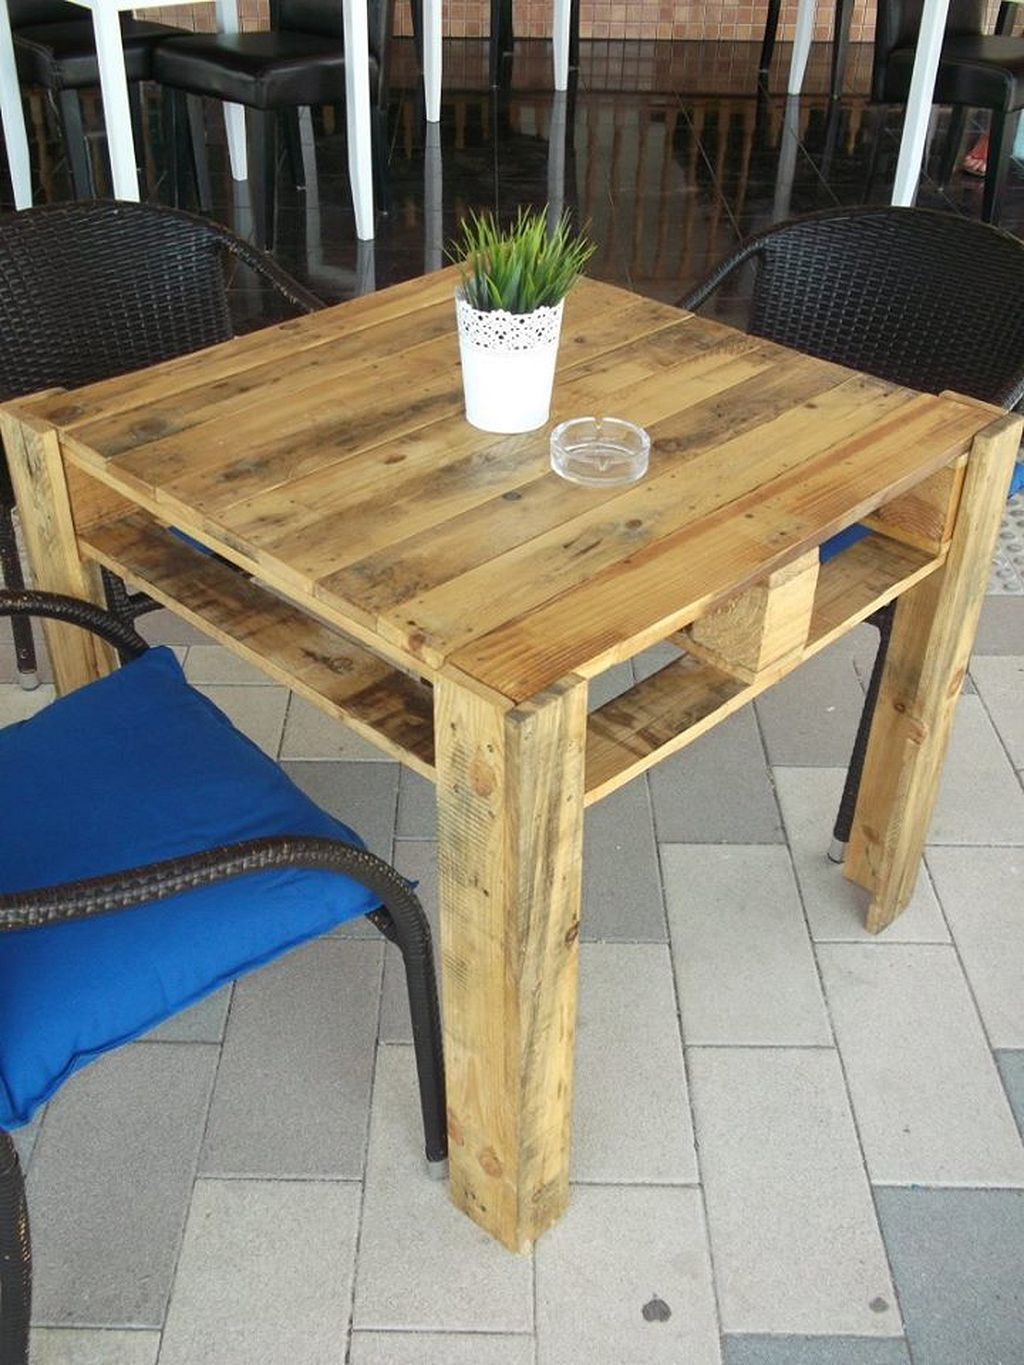 pallet furniture designs. 20+ Smart DIY Outdoor Pallet Furniture Designs That Will Amaze You